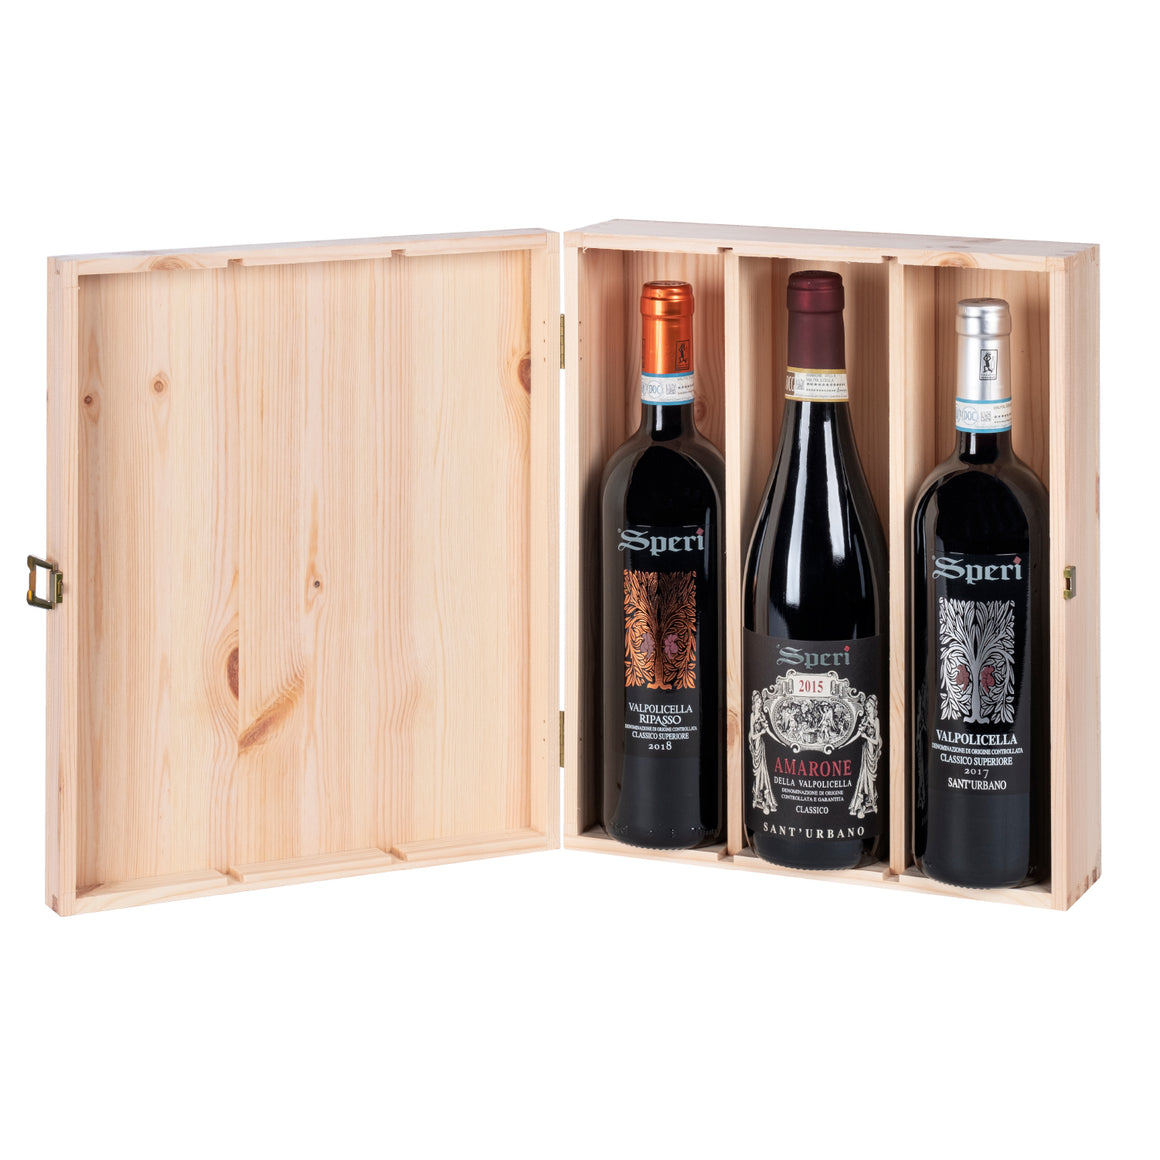 SPERI TRIPLE BOTTLE GIFT SET IN WOODEN BOX